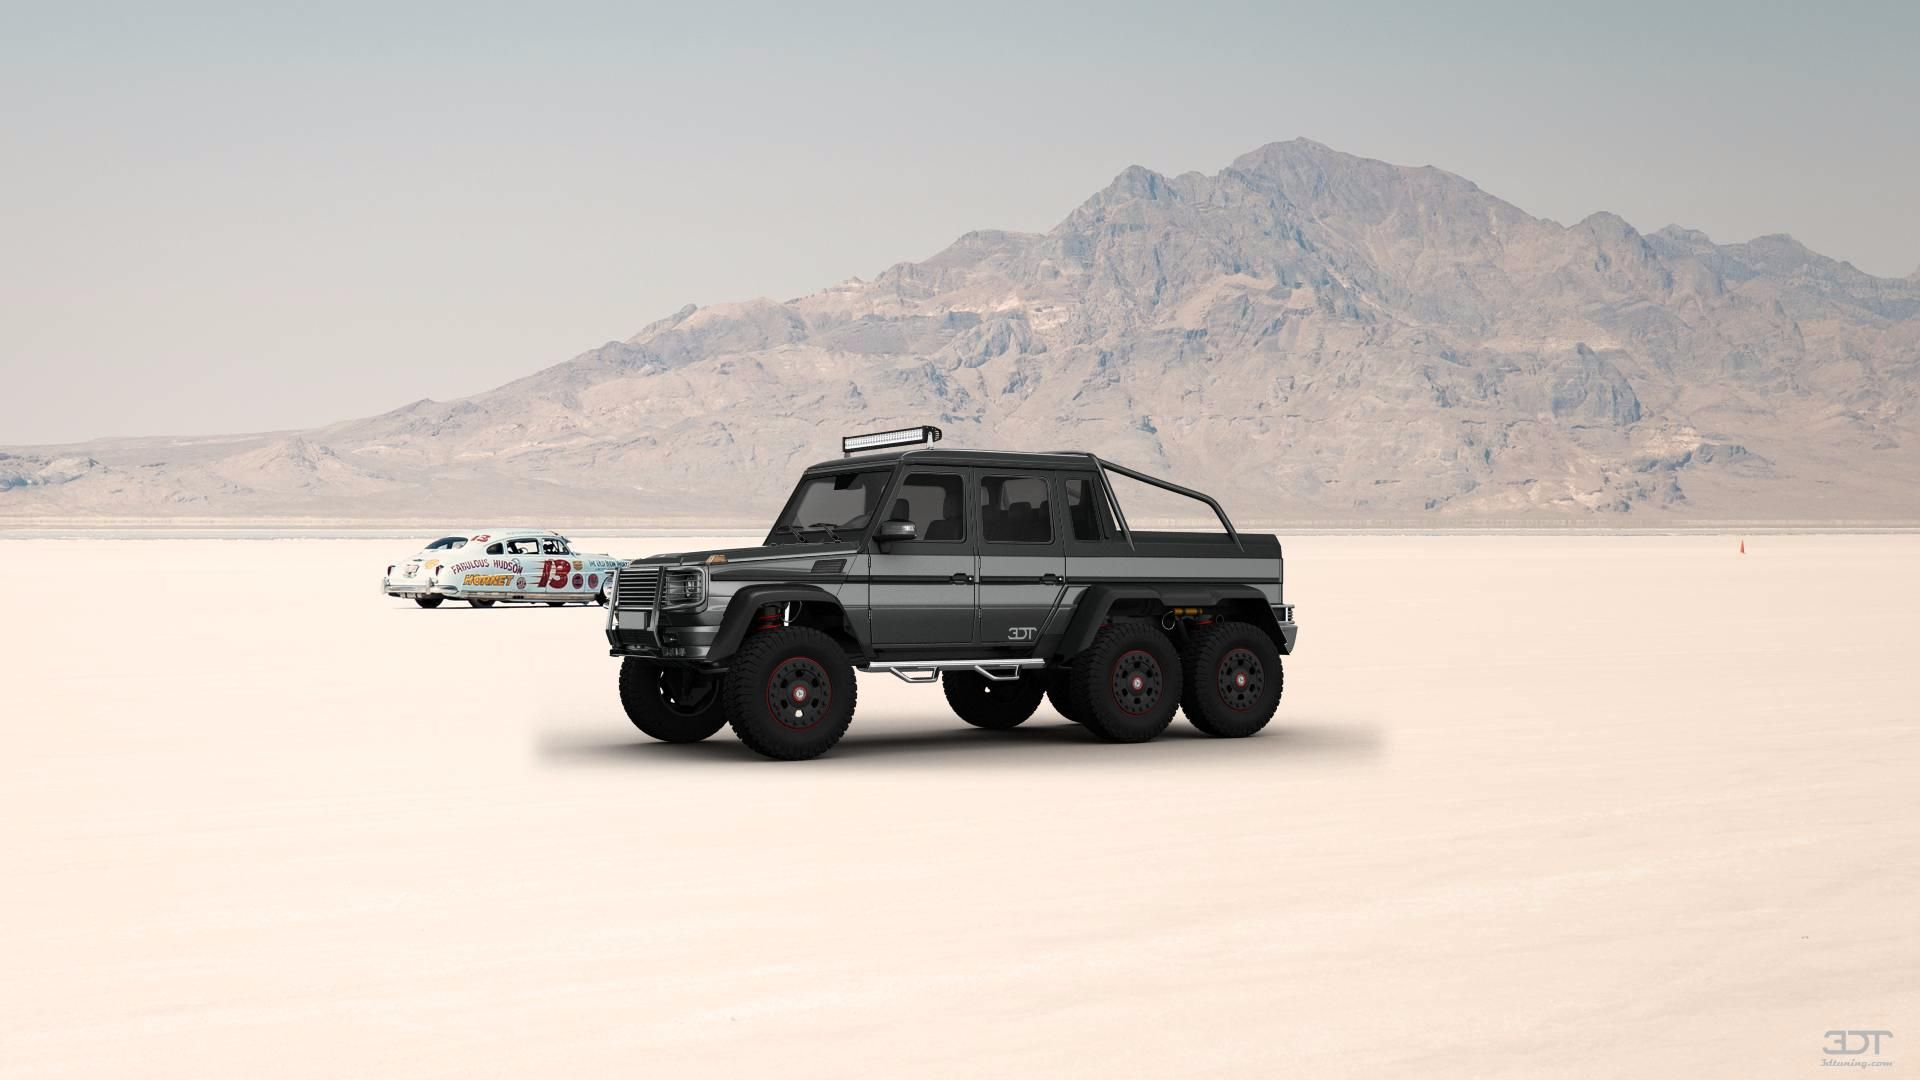 Checkout my tuning #Mercedes #G63AMG6x6 2013 at 3DTuning ...